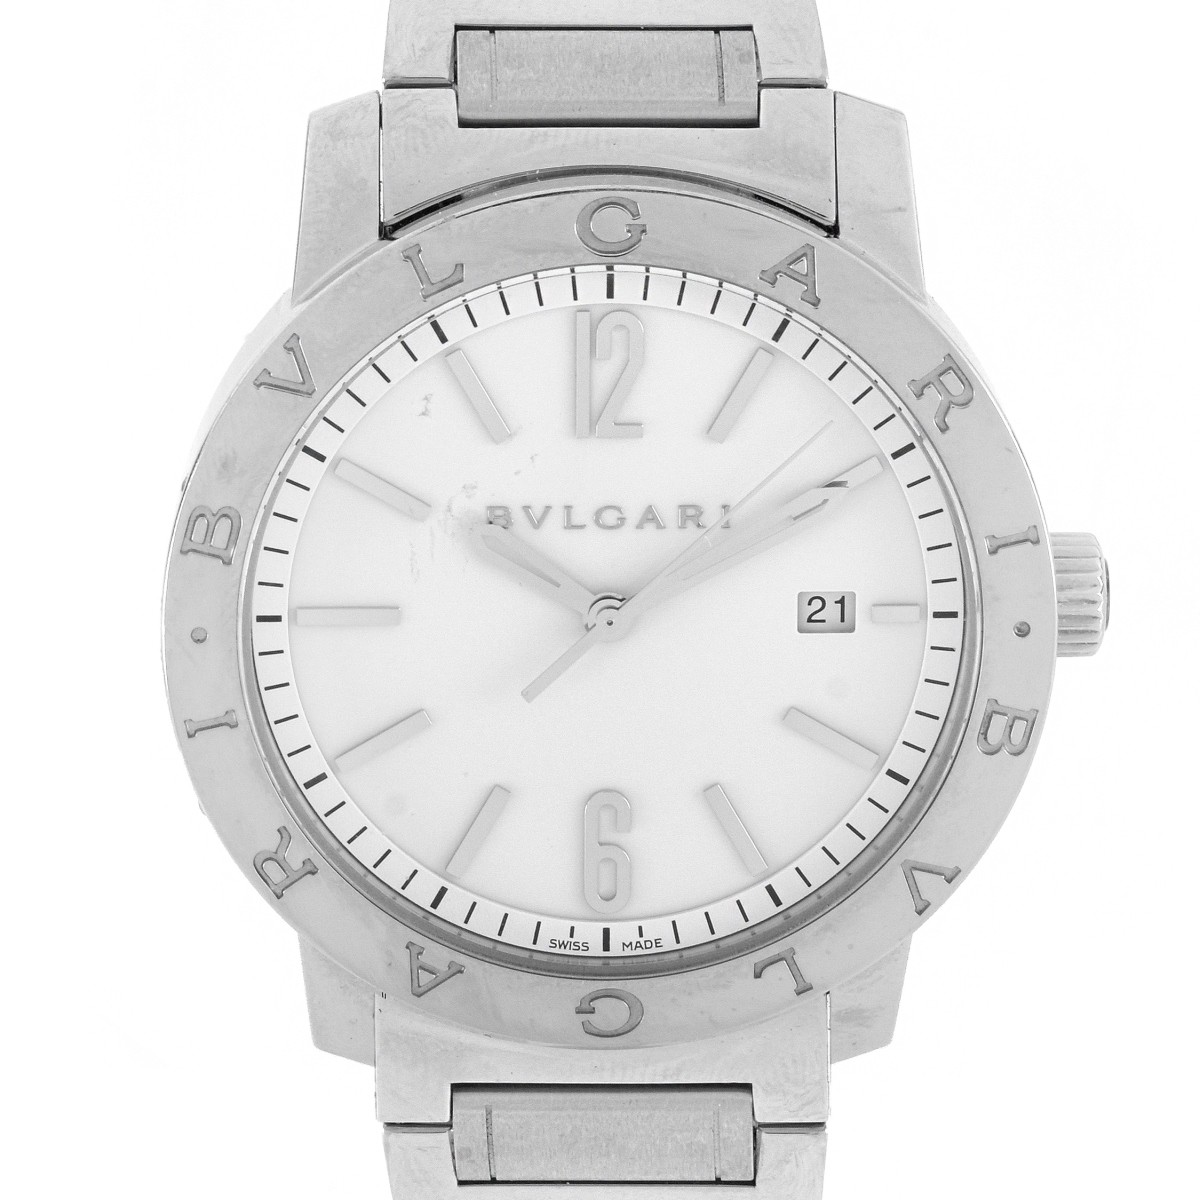 Bulgari Stainless Steel Watch